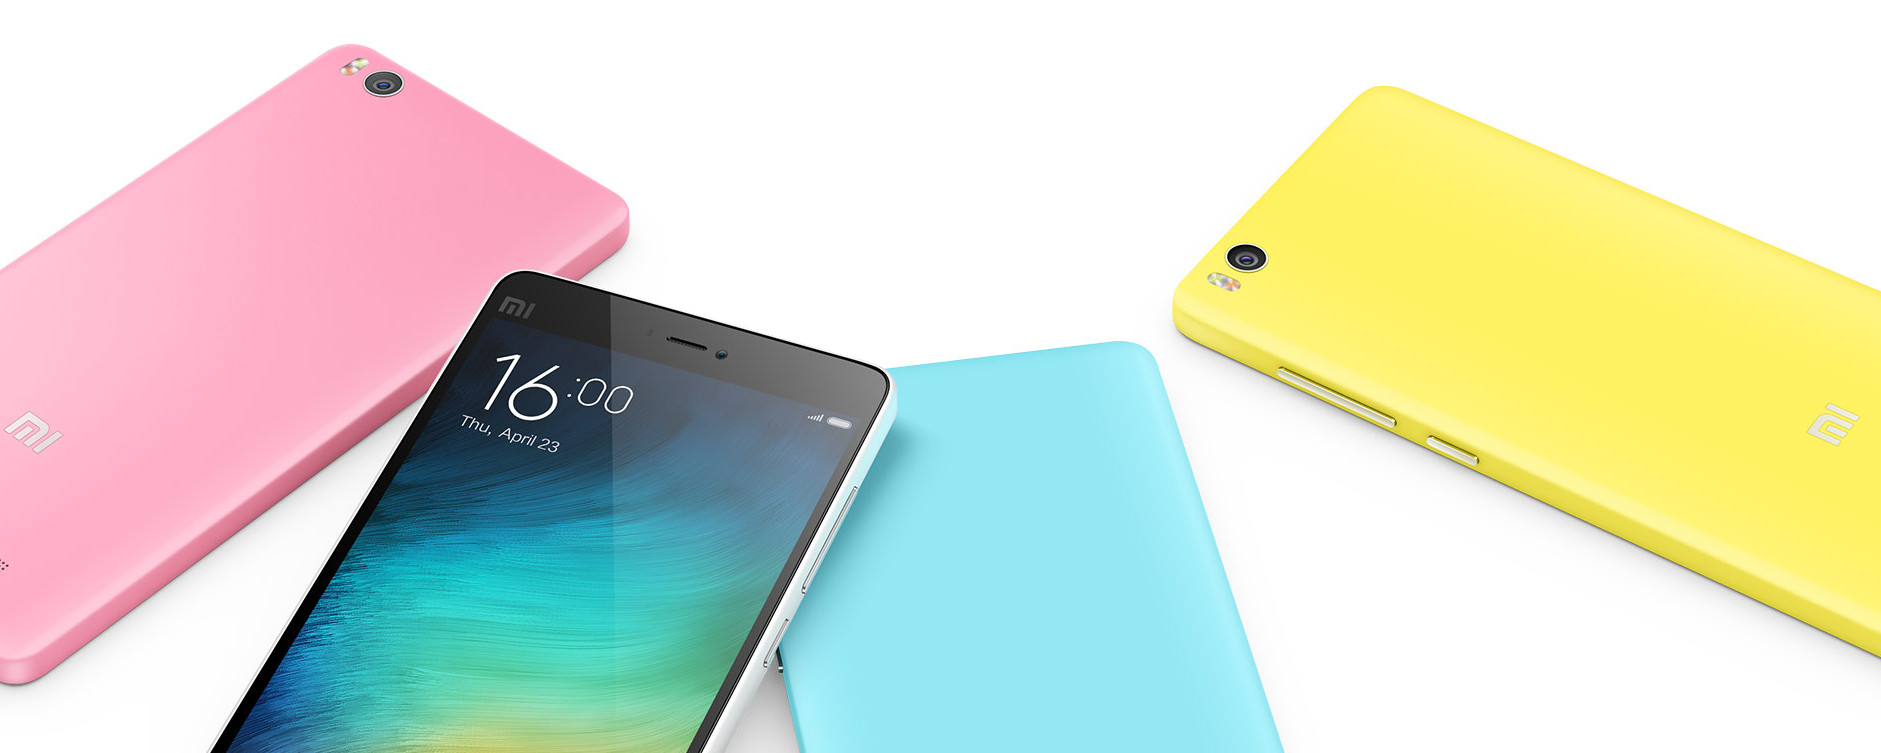 Xiaomi Mi 4i : company's newest affordable offering